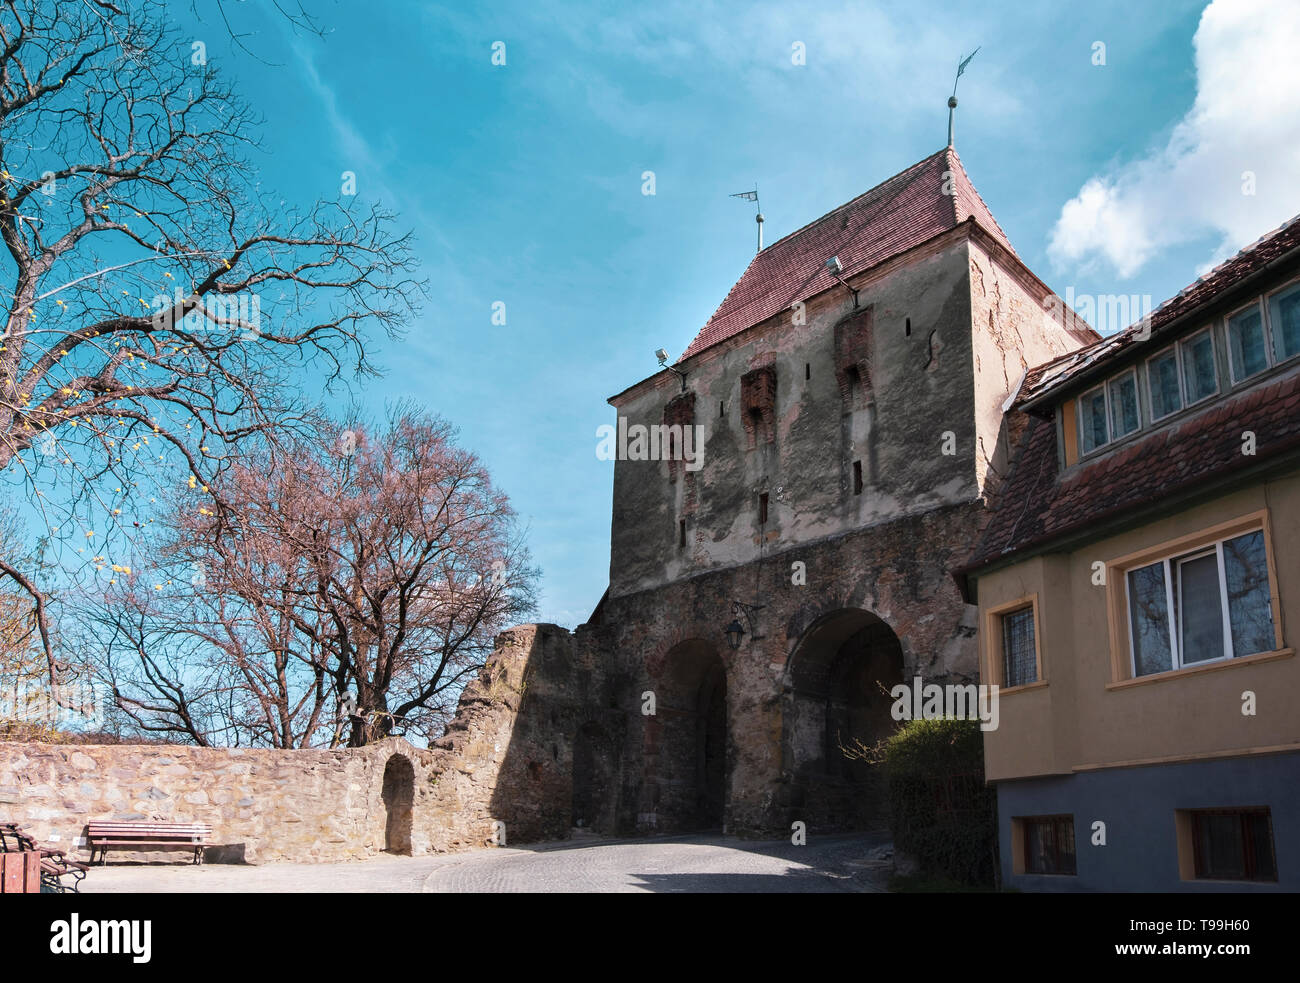 Wide street view of the Tailors Tower, a gate built in the 14th century to defend the entrance to the citadel, on a sunny day in spring. - Stock Image